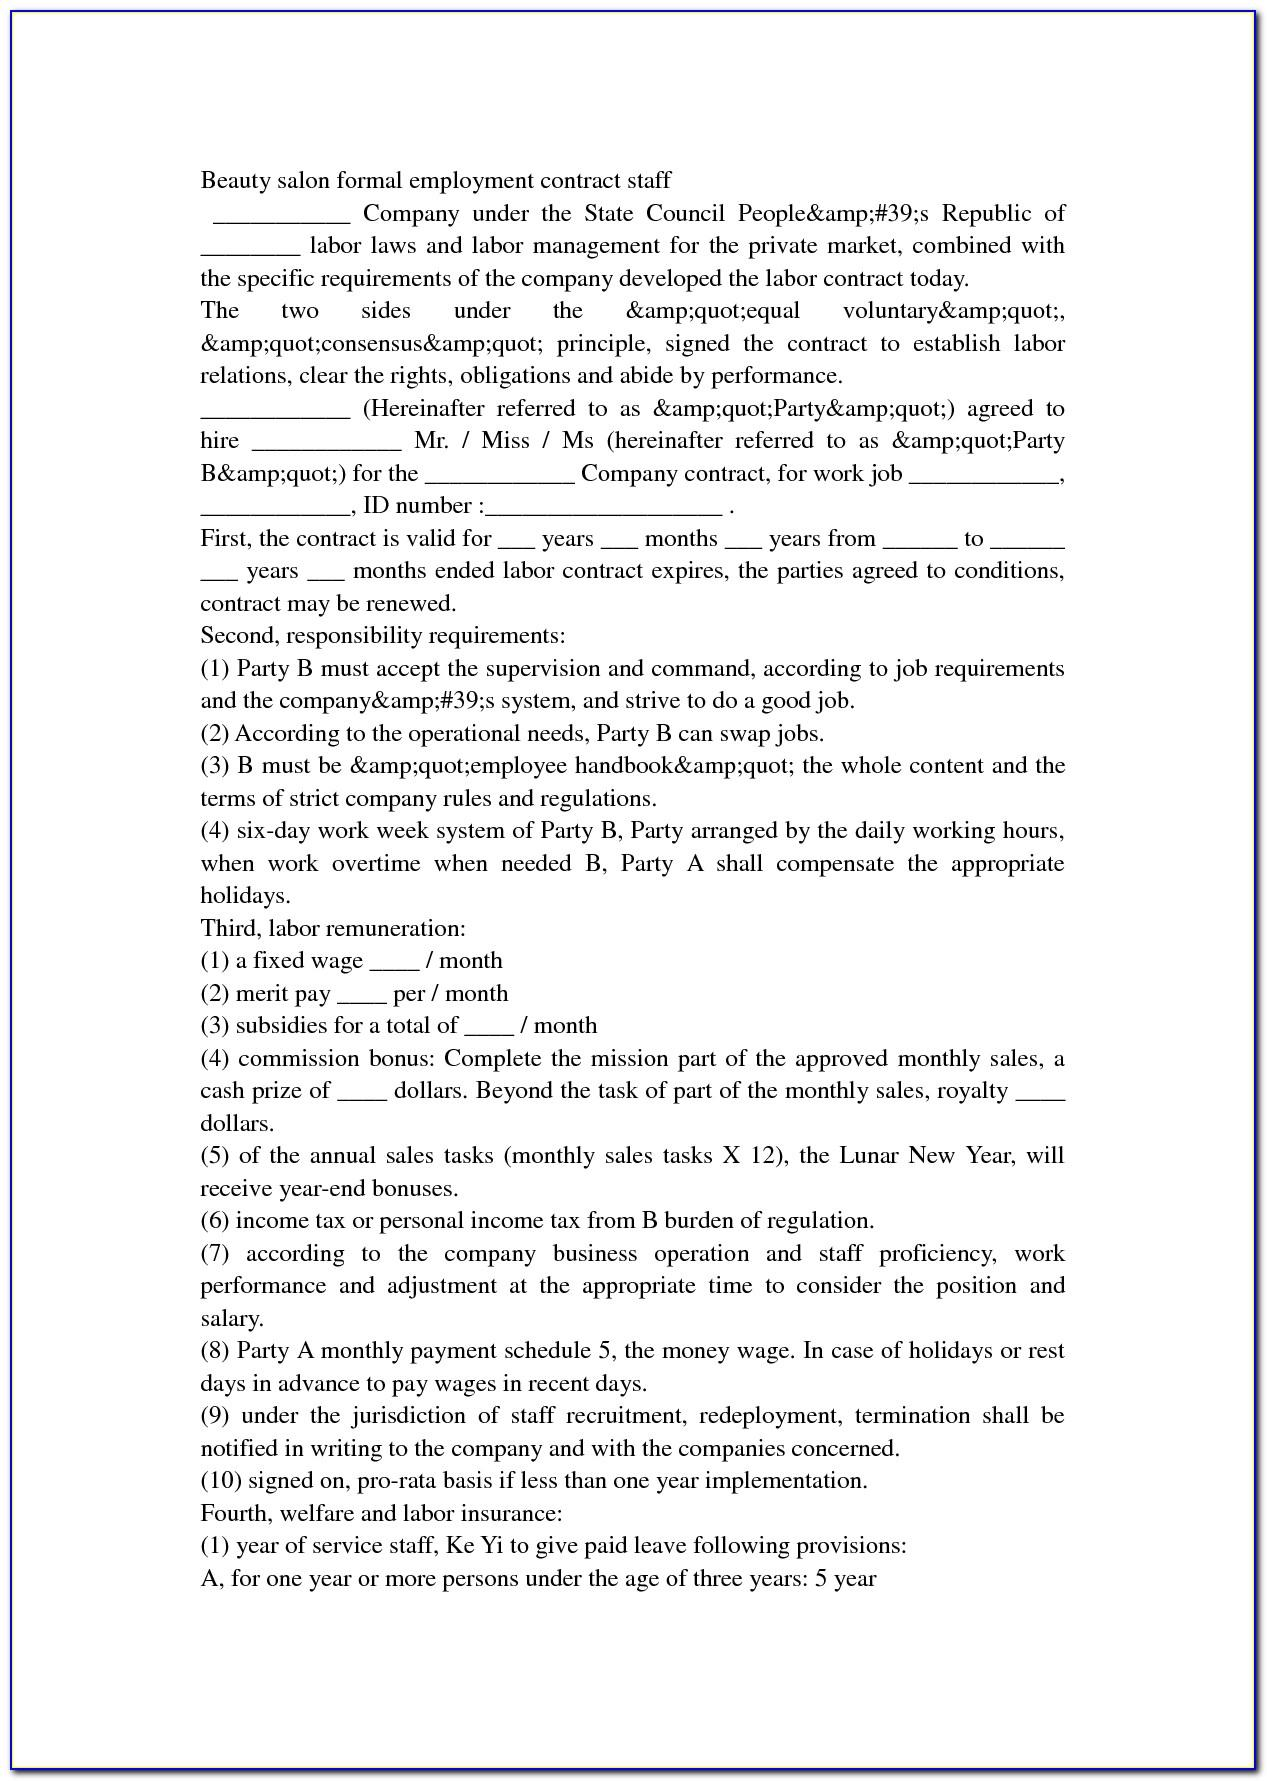 Hair Salon Employee Contract Templates